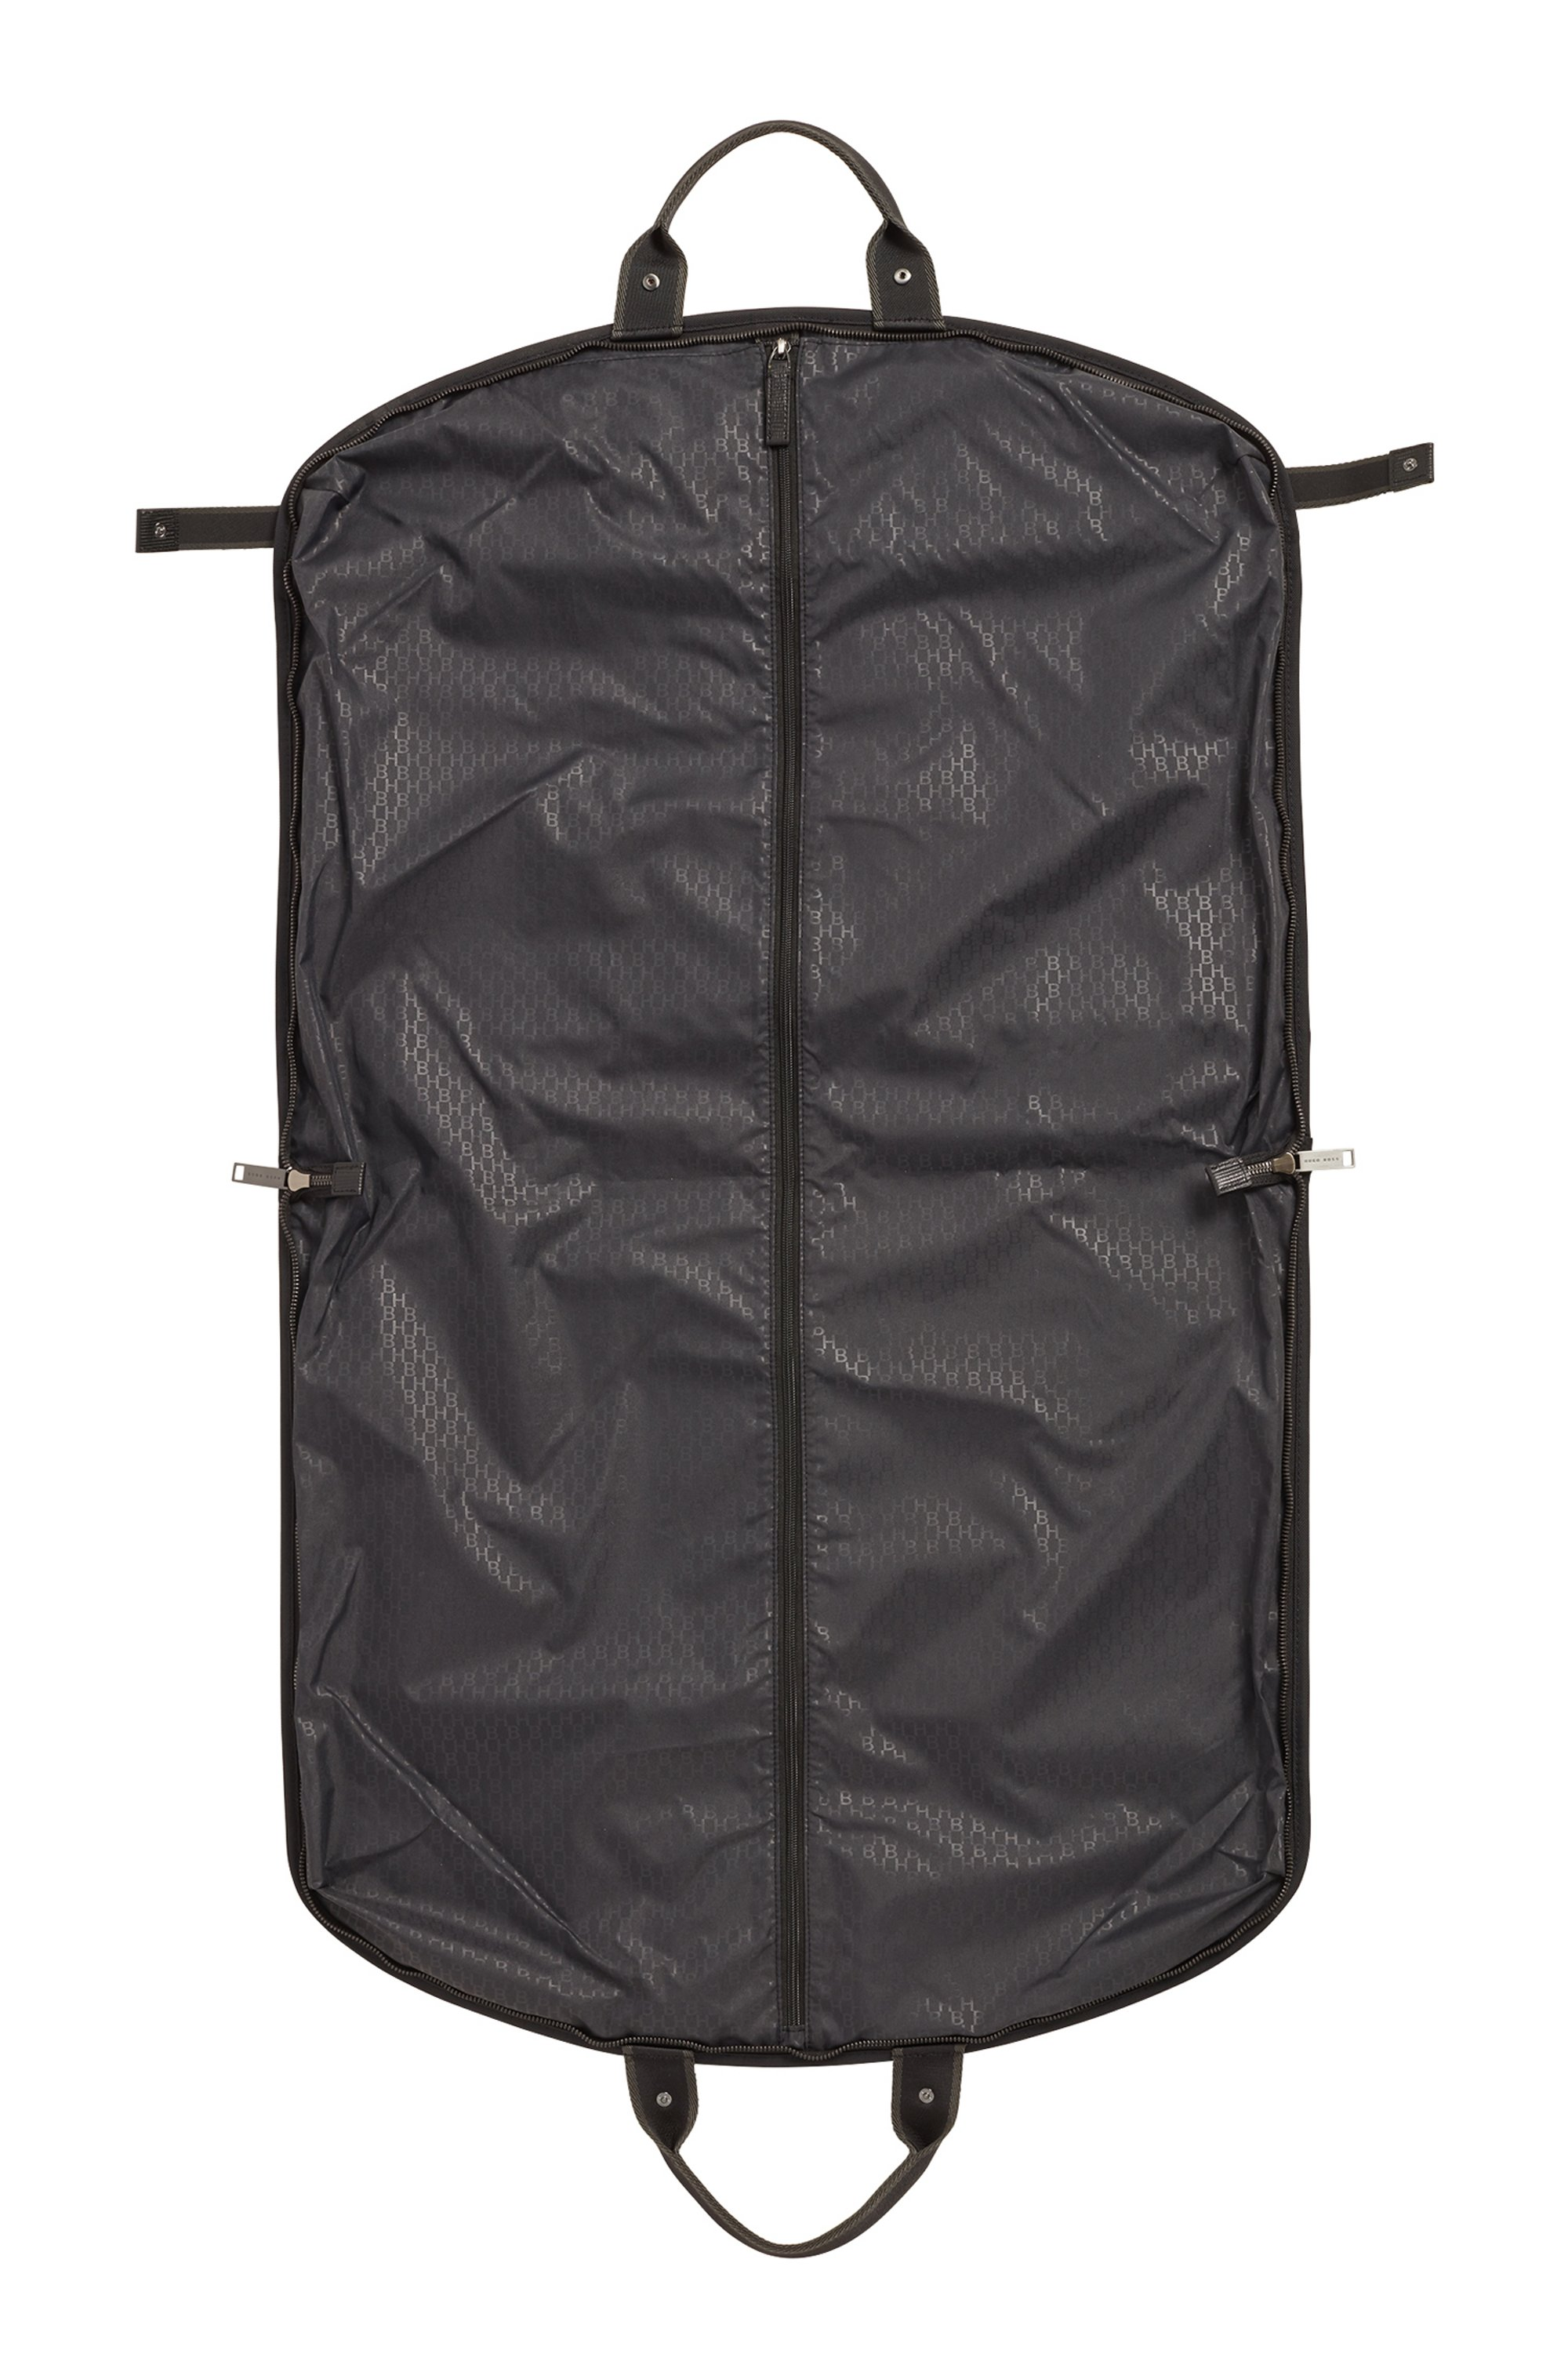 Garment bag in certified recycled nylon